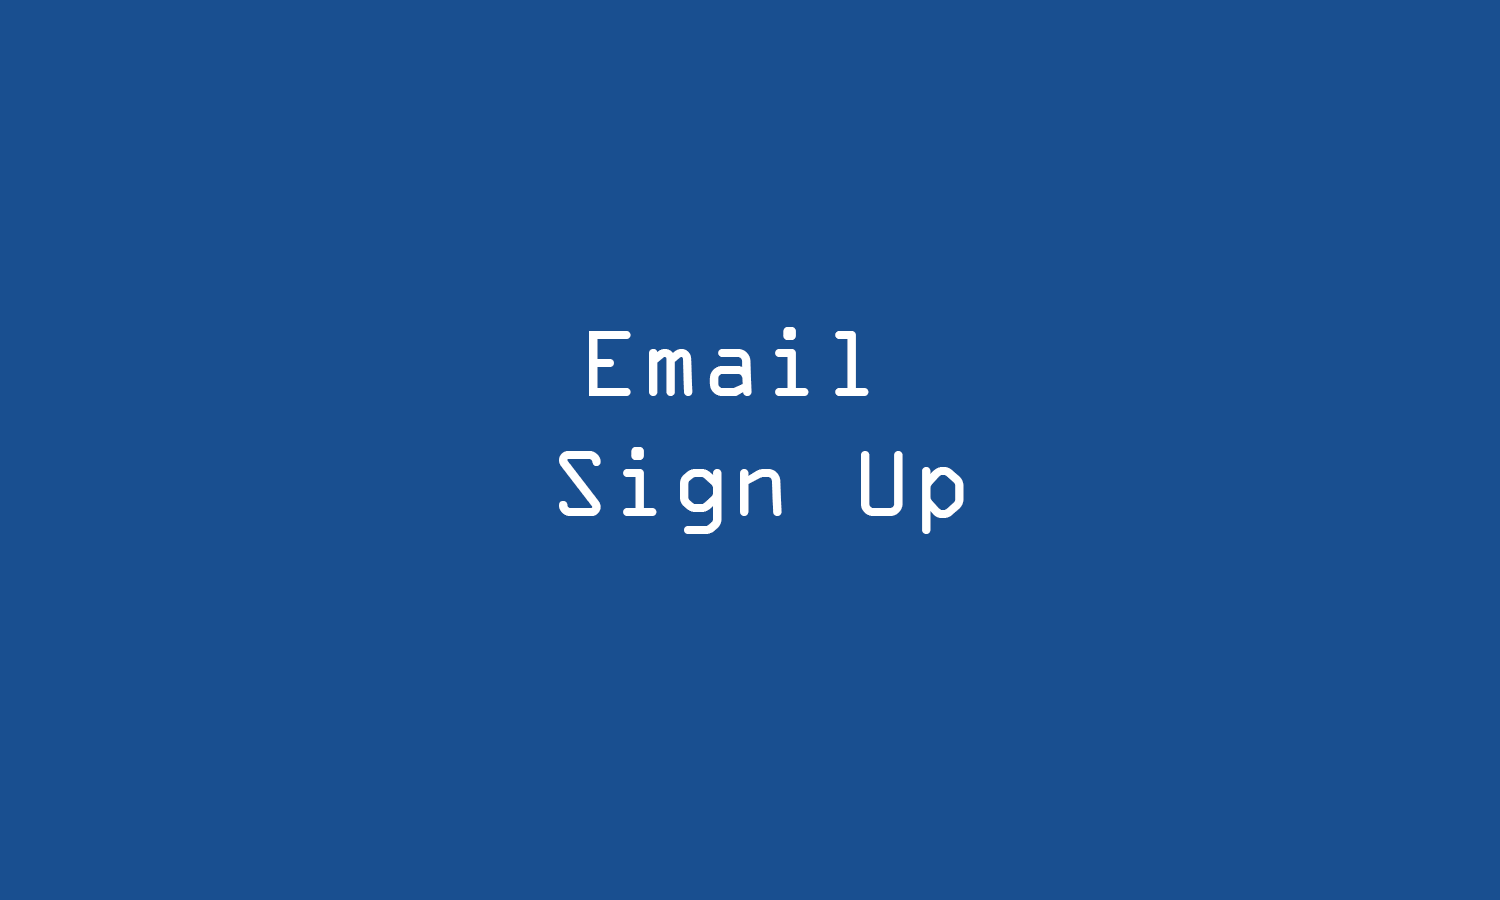 email sign up blue darker new.png